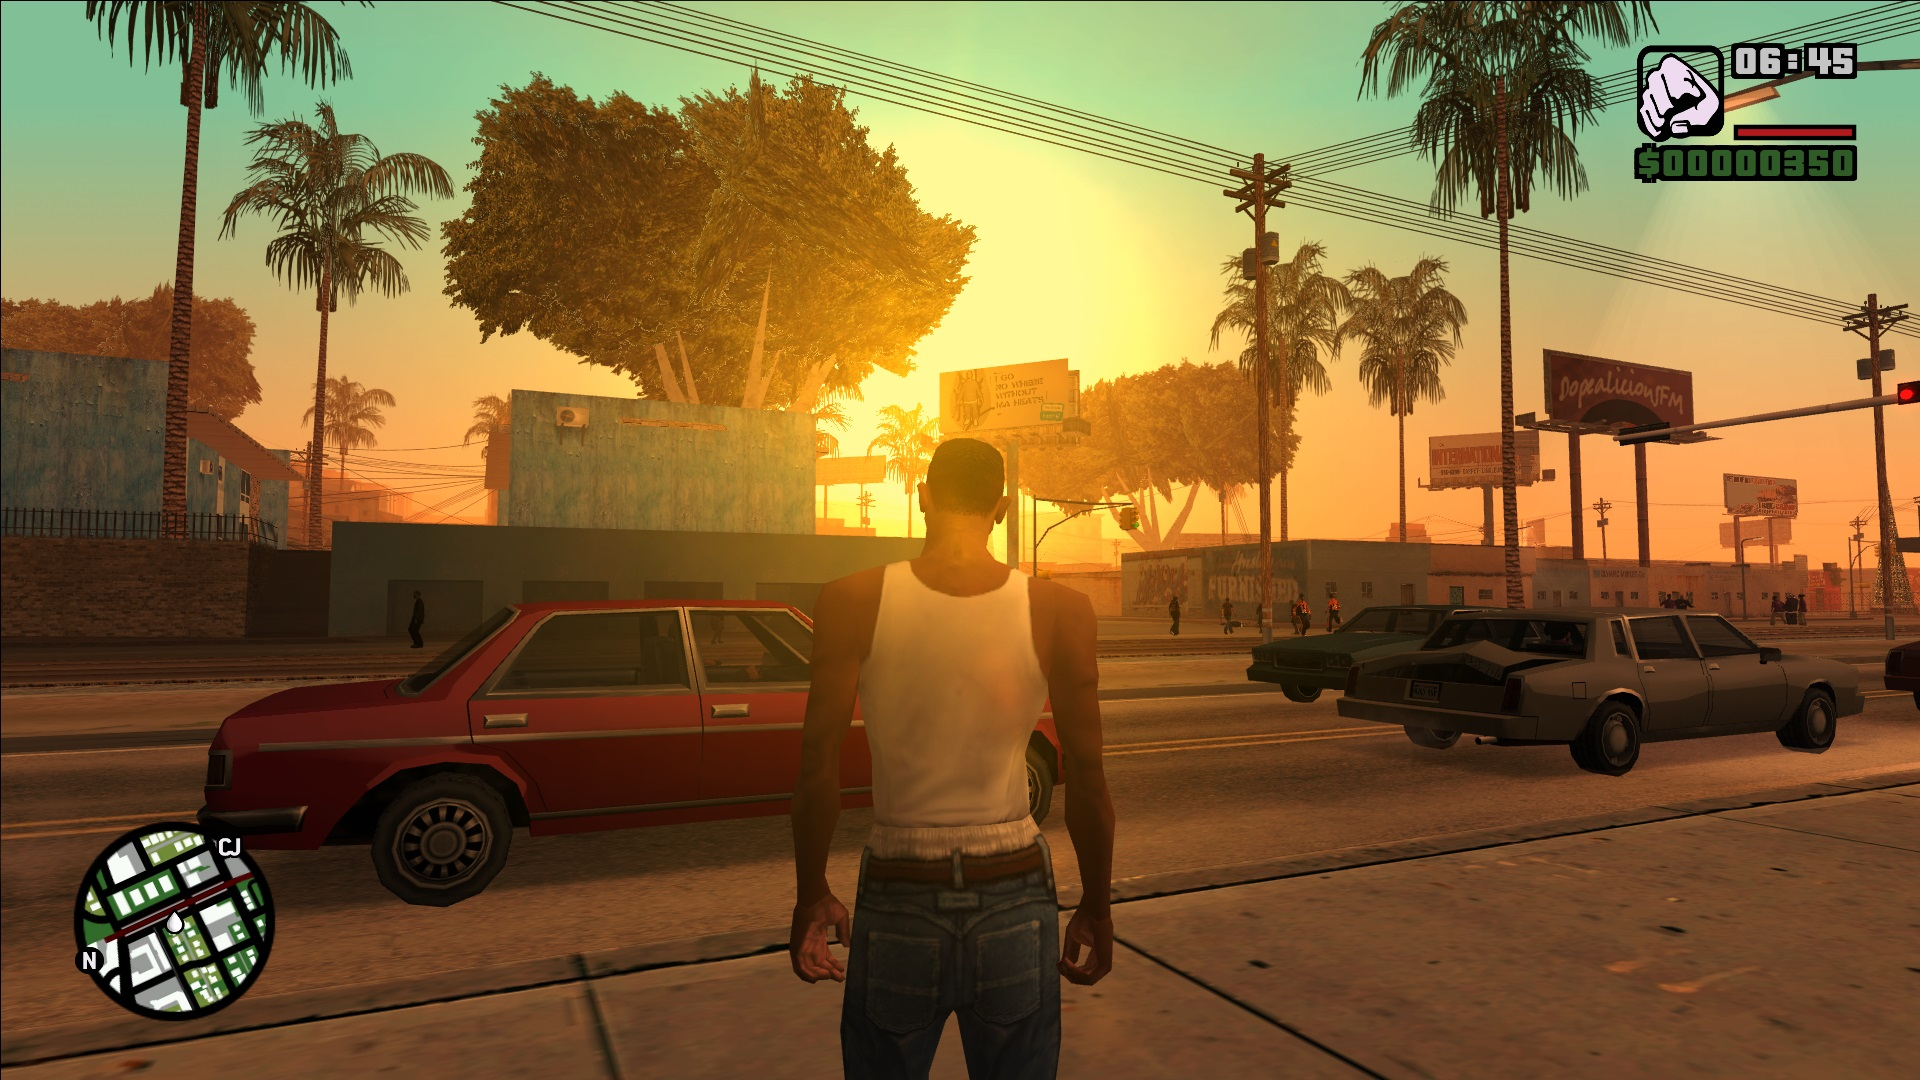 gta 4 download free no torrent